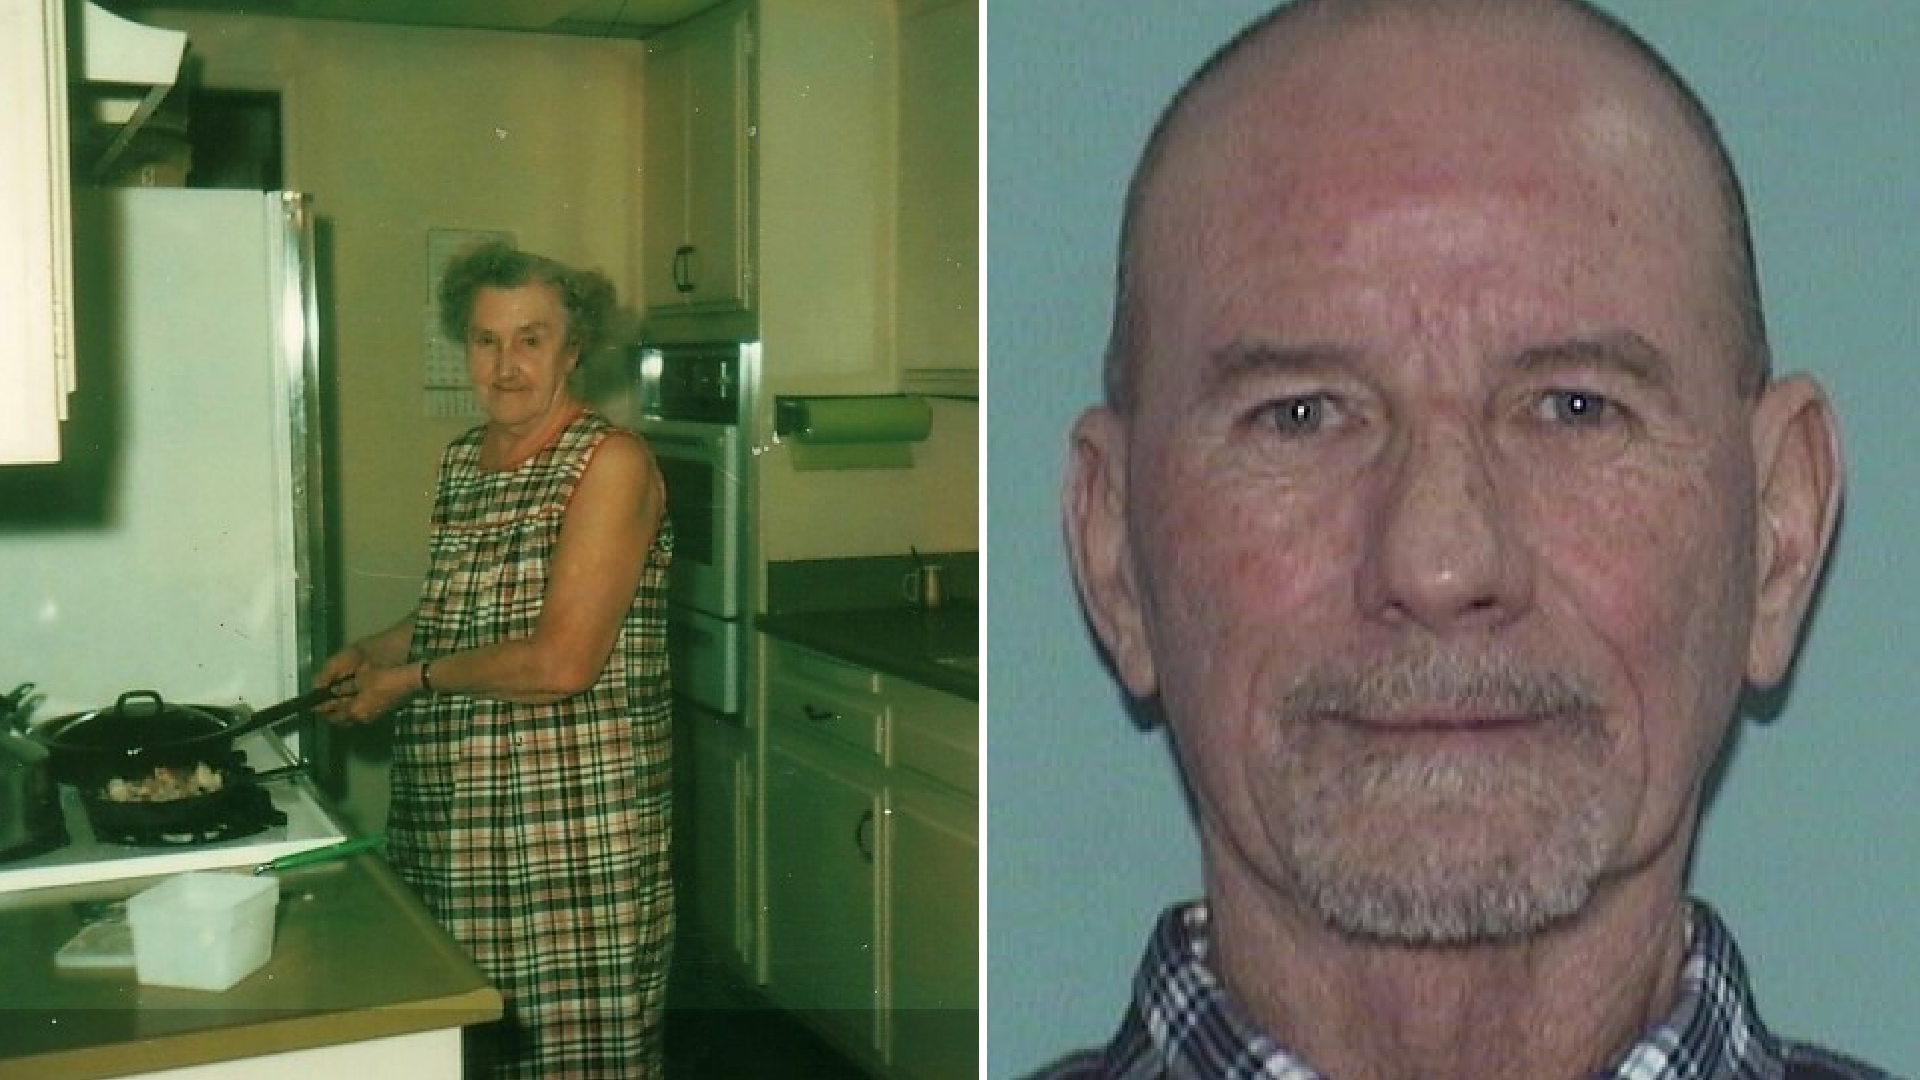 Viola Hagenkord and the man arrested in her killing, 64-year-old Andre William Lepere, are seen in undated photos provided by the Anaheim Police Department on April 30, 2021.